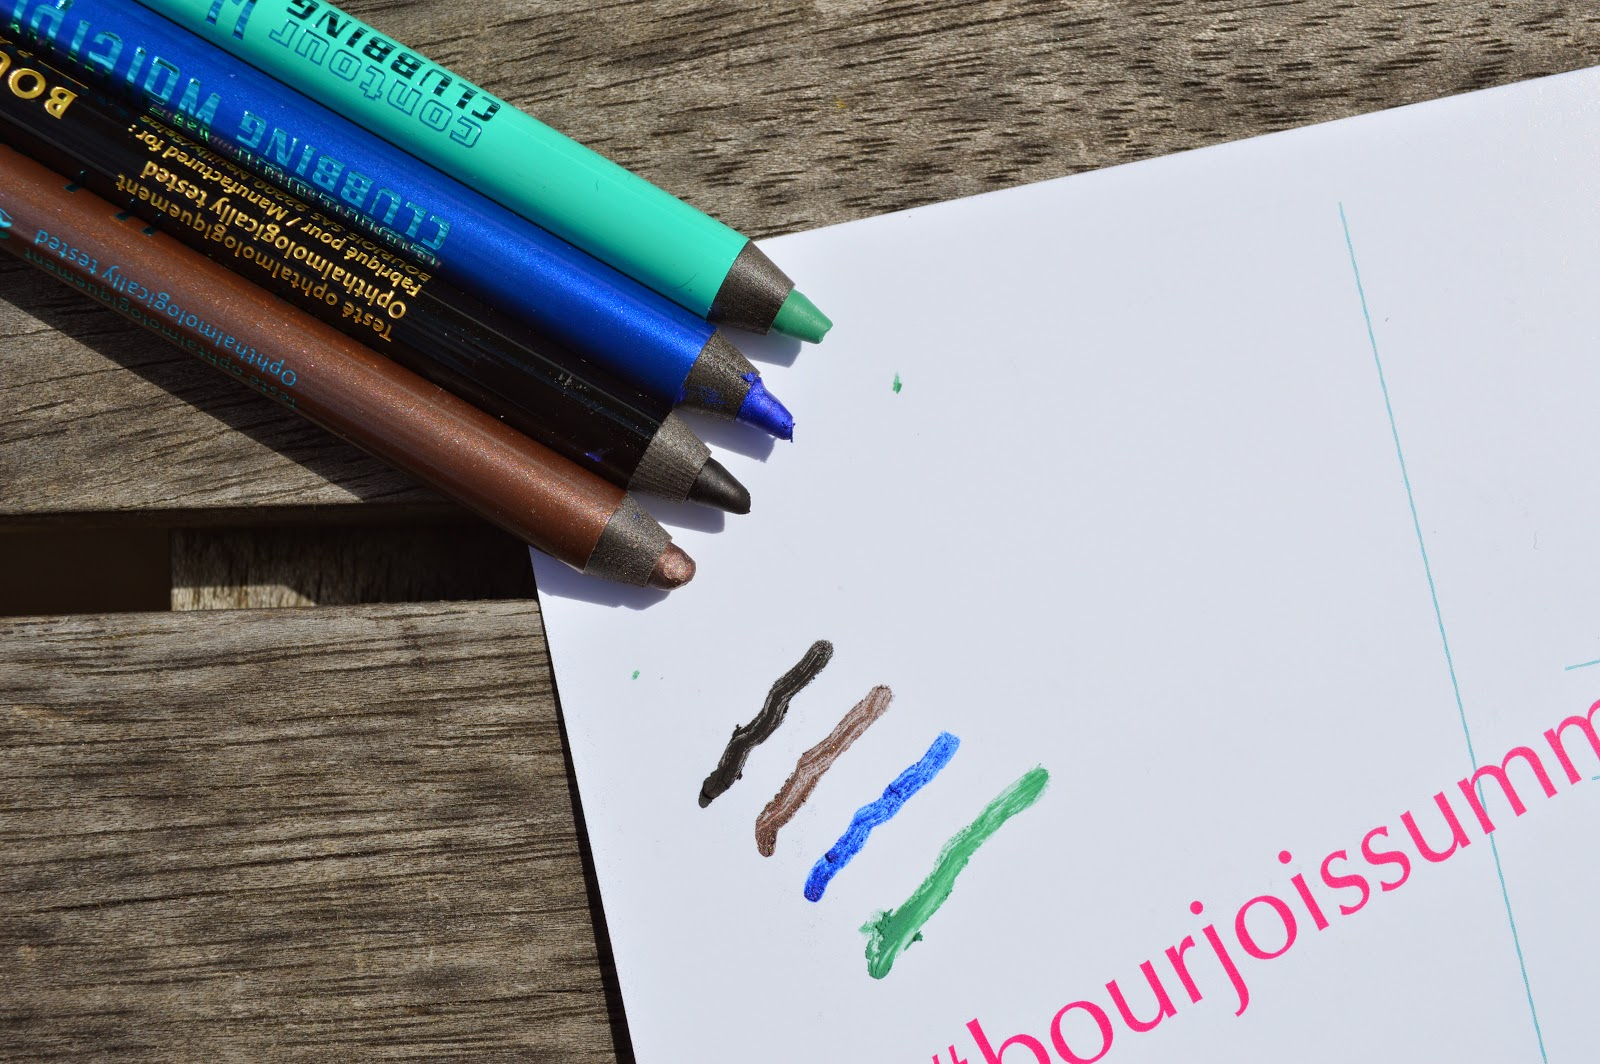 Bourjois Contour Clubbing Waterproof eyeliners  54 Ultra Black, 57 Up and Brown, 46 Bleu Neon, 59 Dynamint